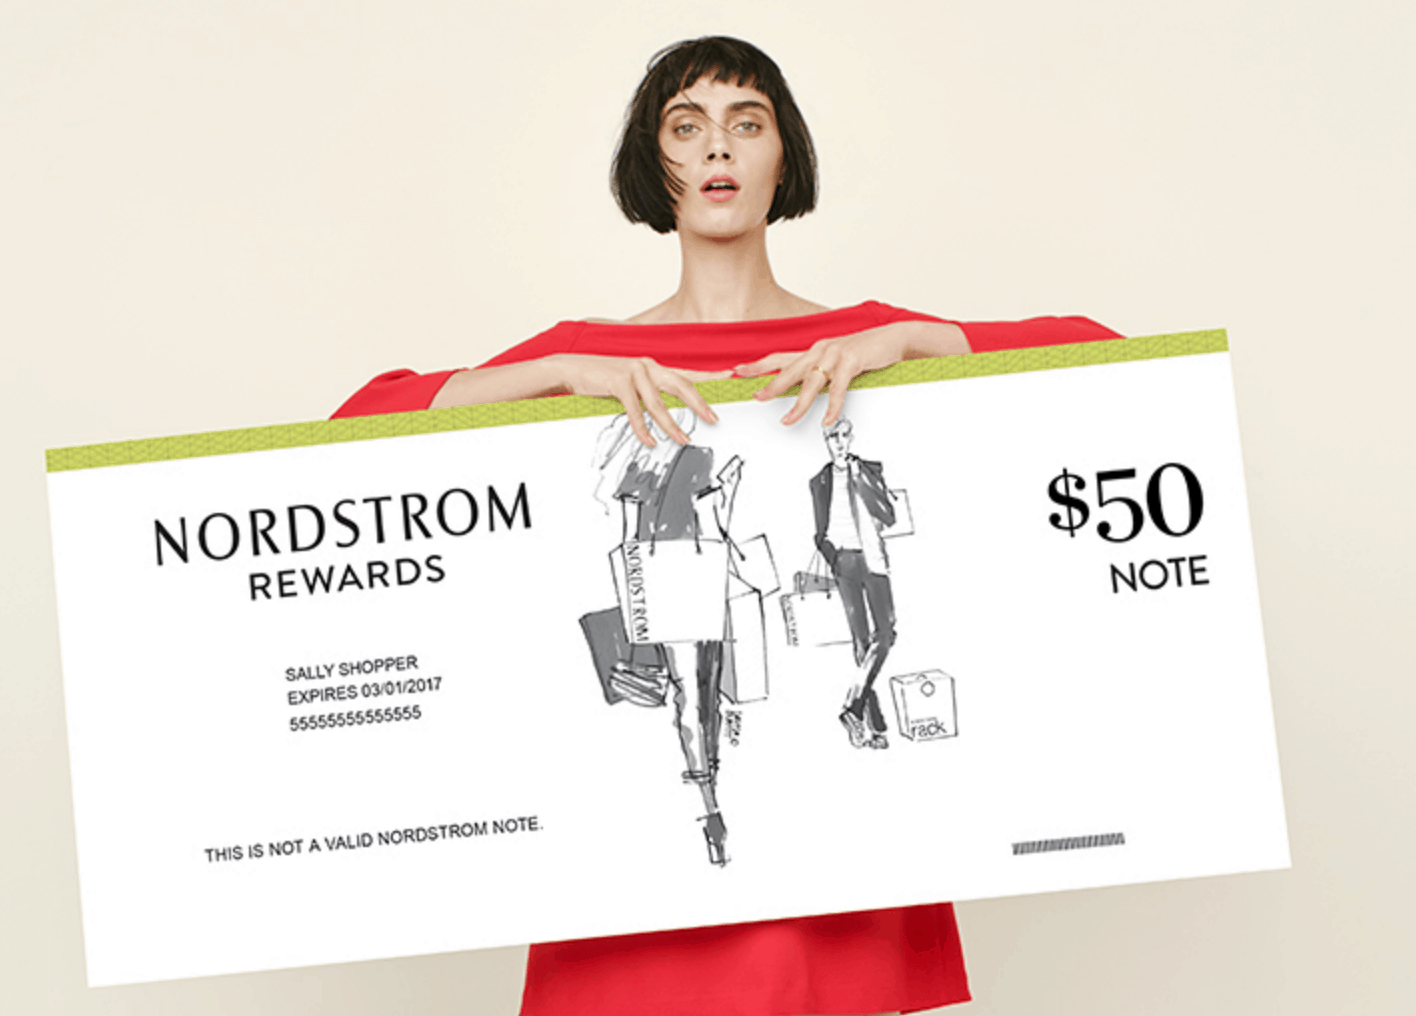 nordstrom email coupon